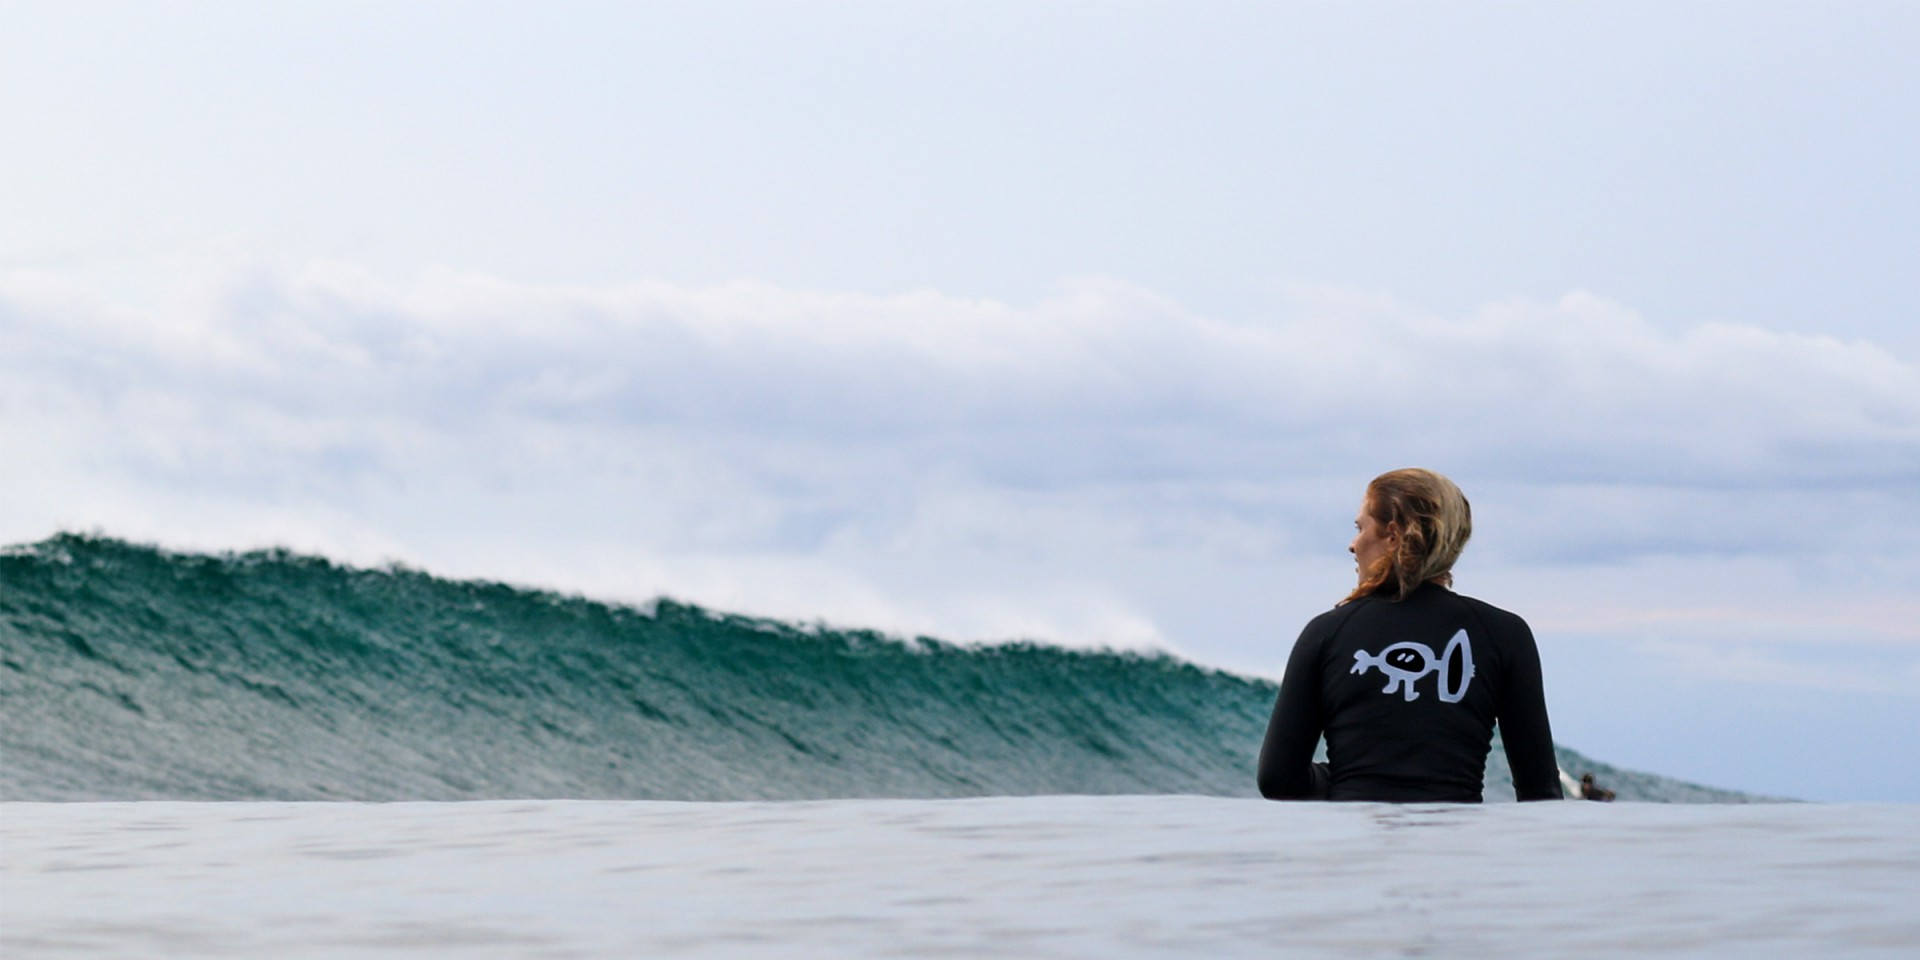 Surf Coaching Resort Availability